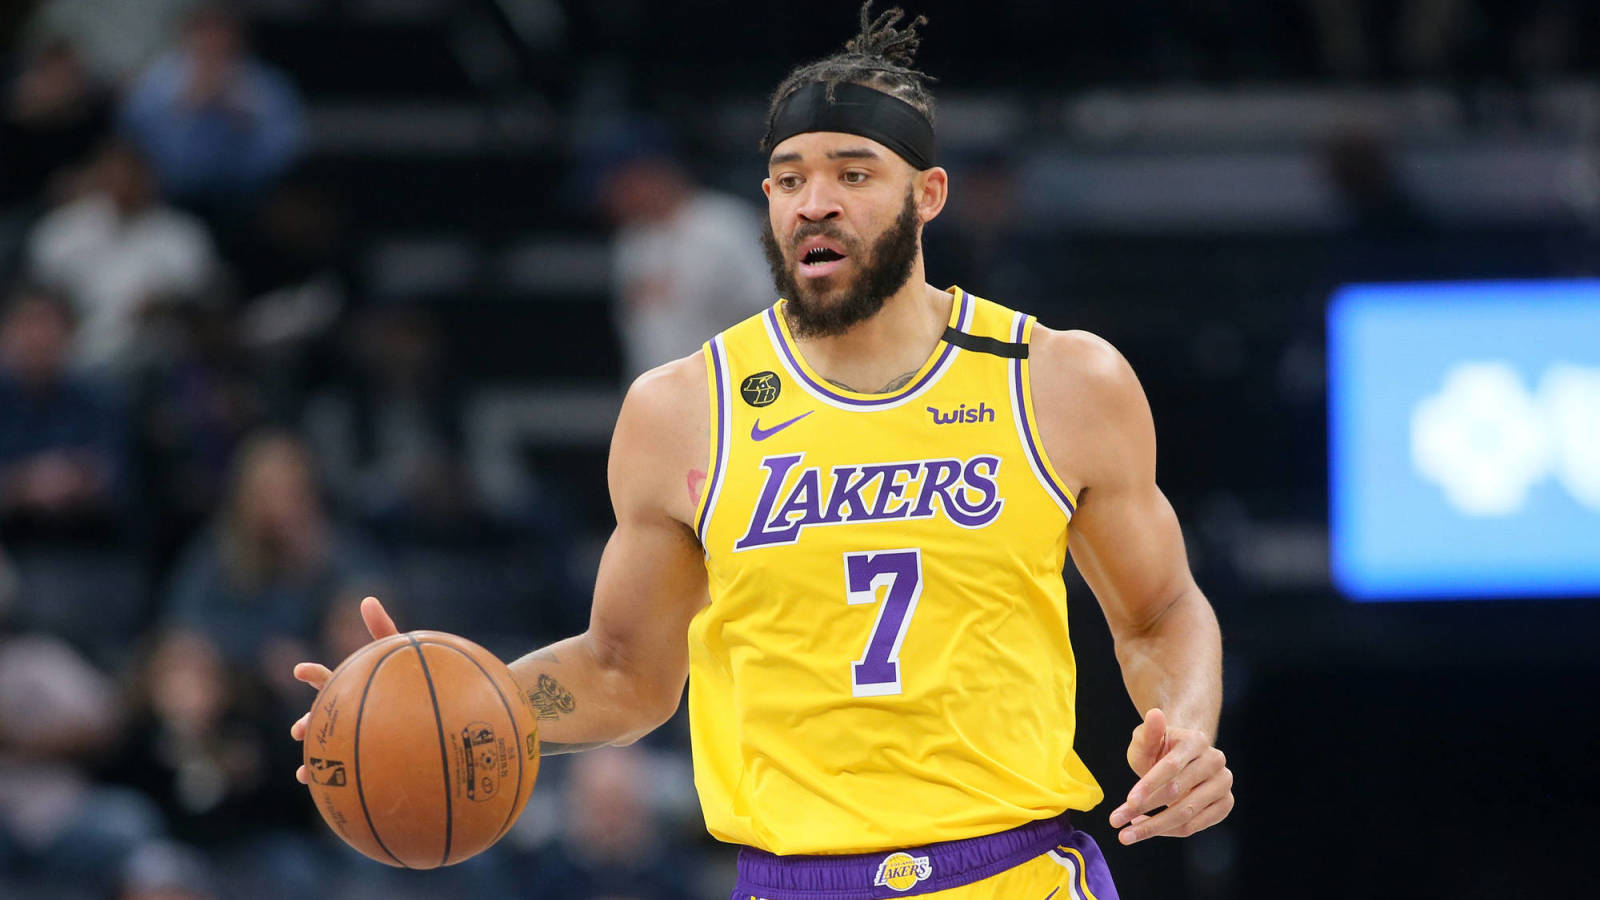 SOURCE SPORTS: NBA Champion JaVale McGee Nominated for a Grammy